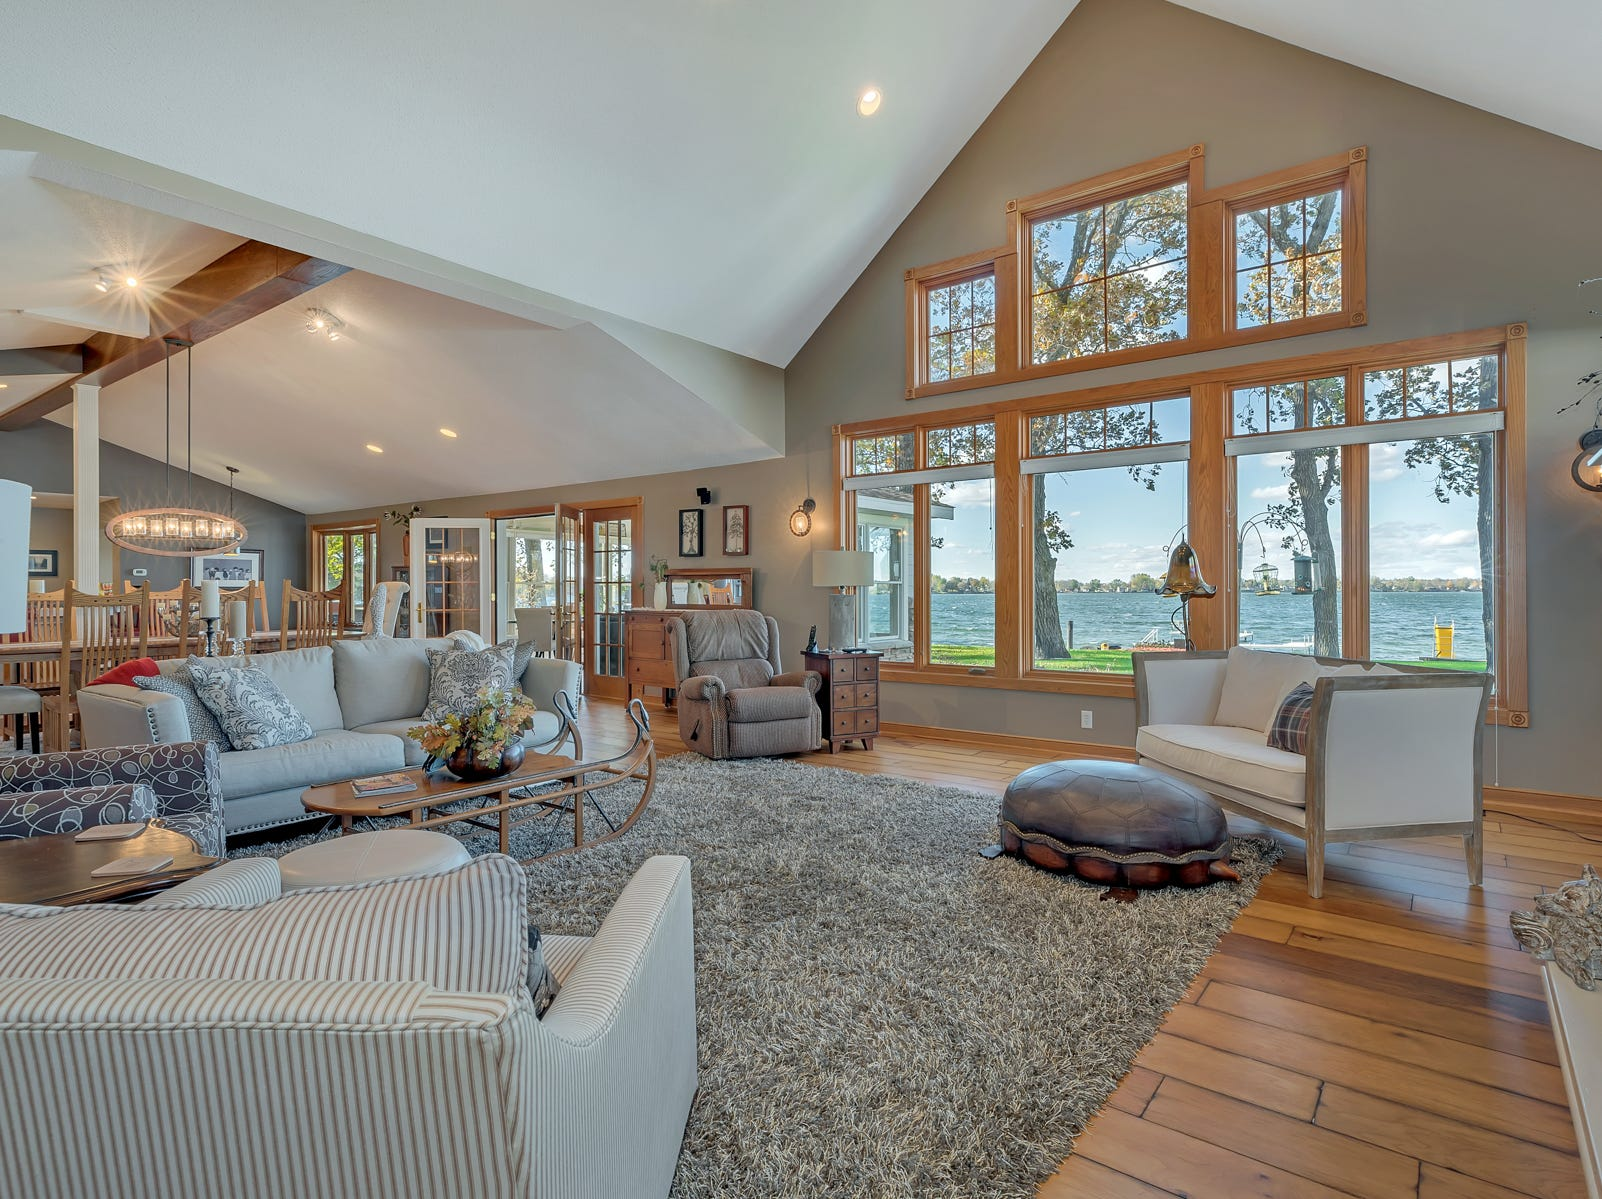 The first floor main area shows off the home's brilliant design and wonderful sightlines to the lake.